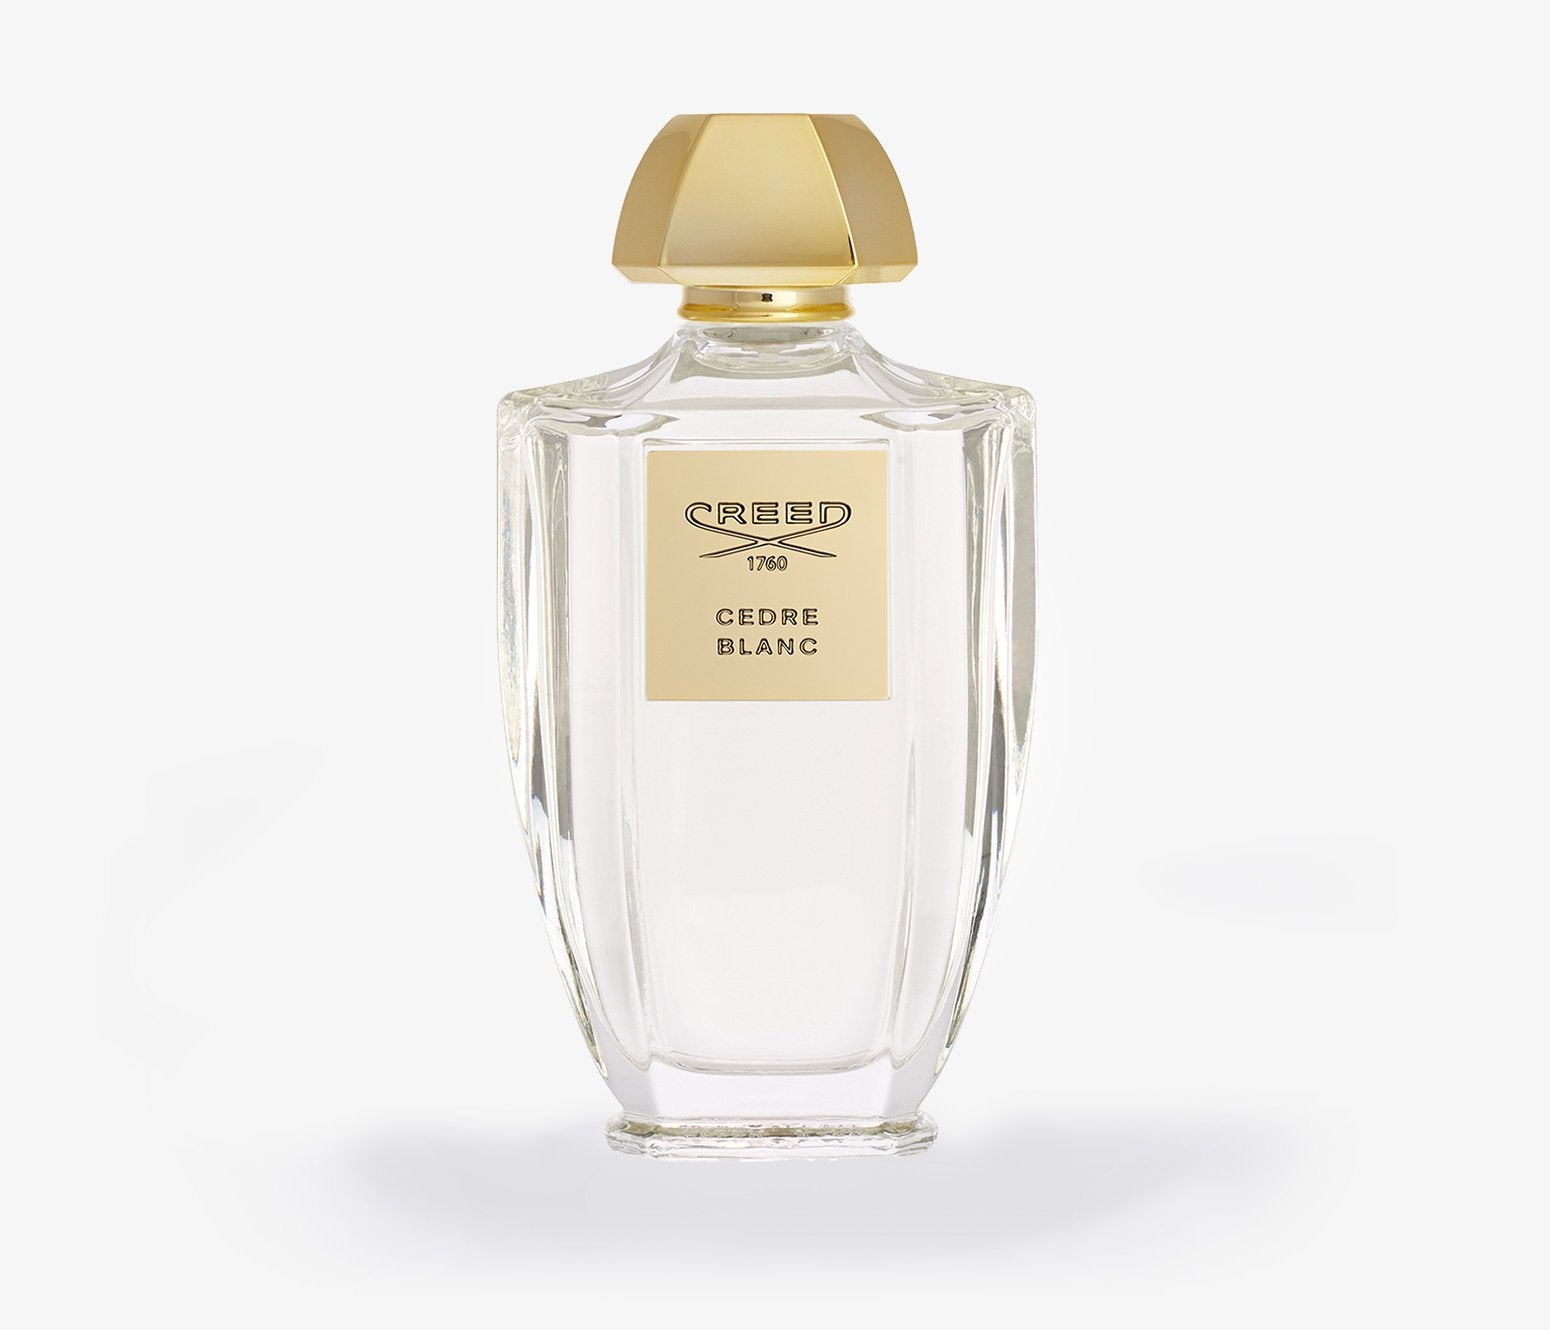 Creed - Cedre Blanc - 100ml - VLI001 - Product Image - Fragrance - Les Senteurs